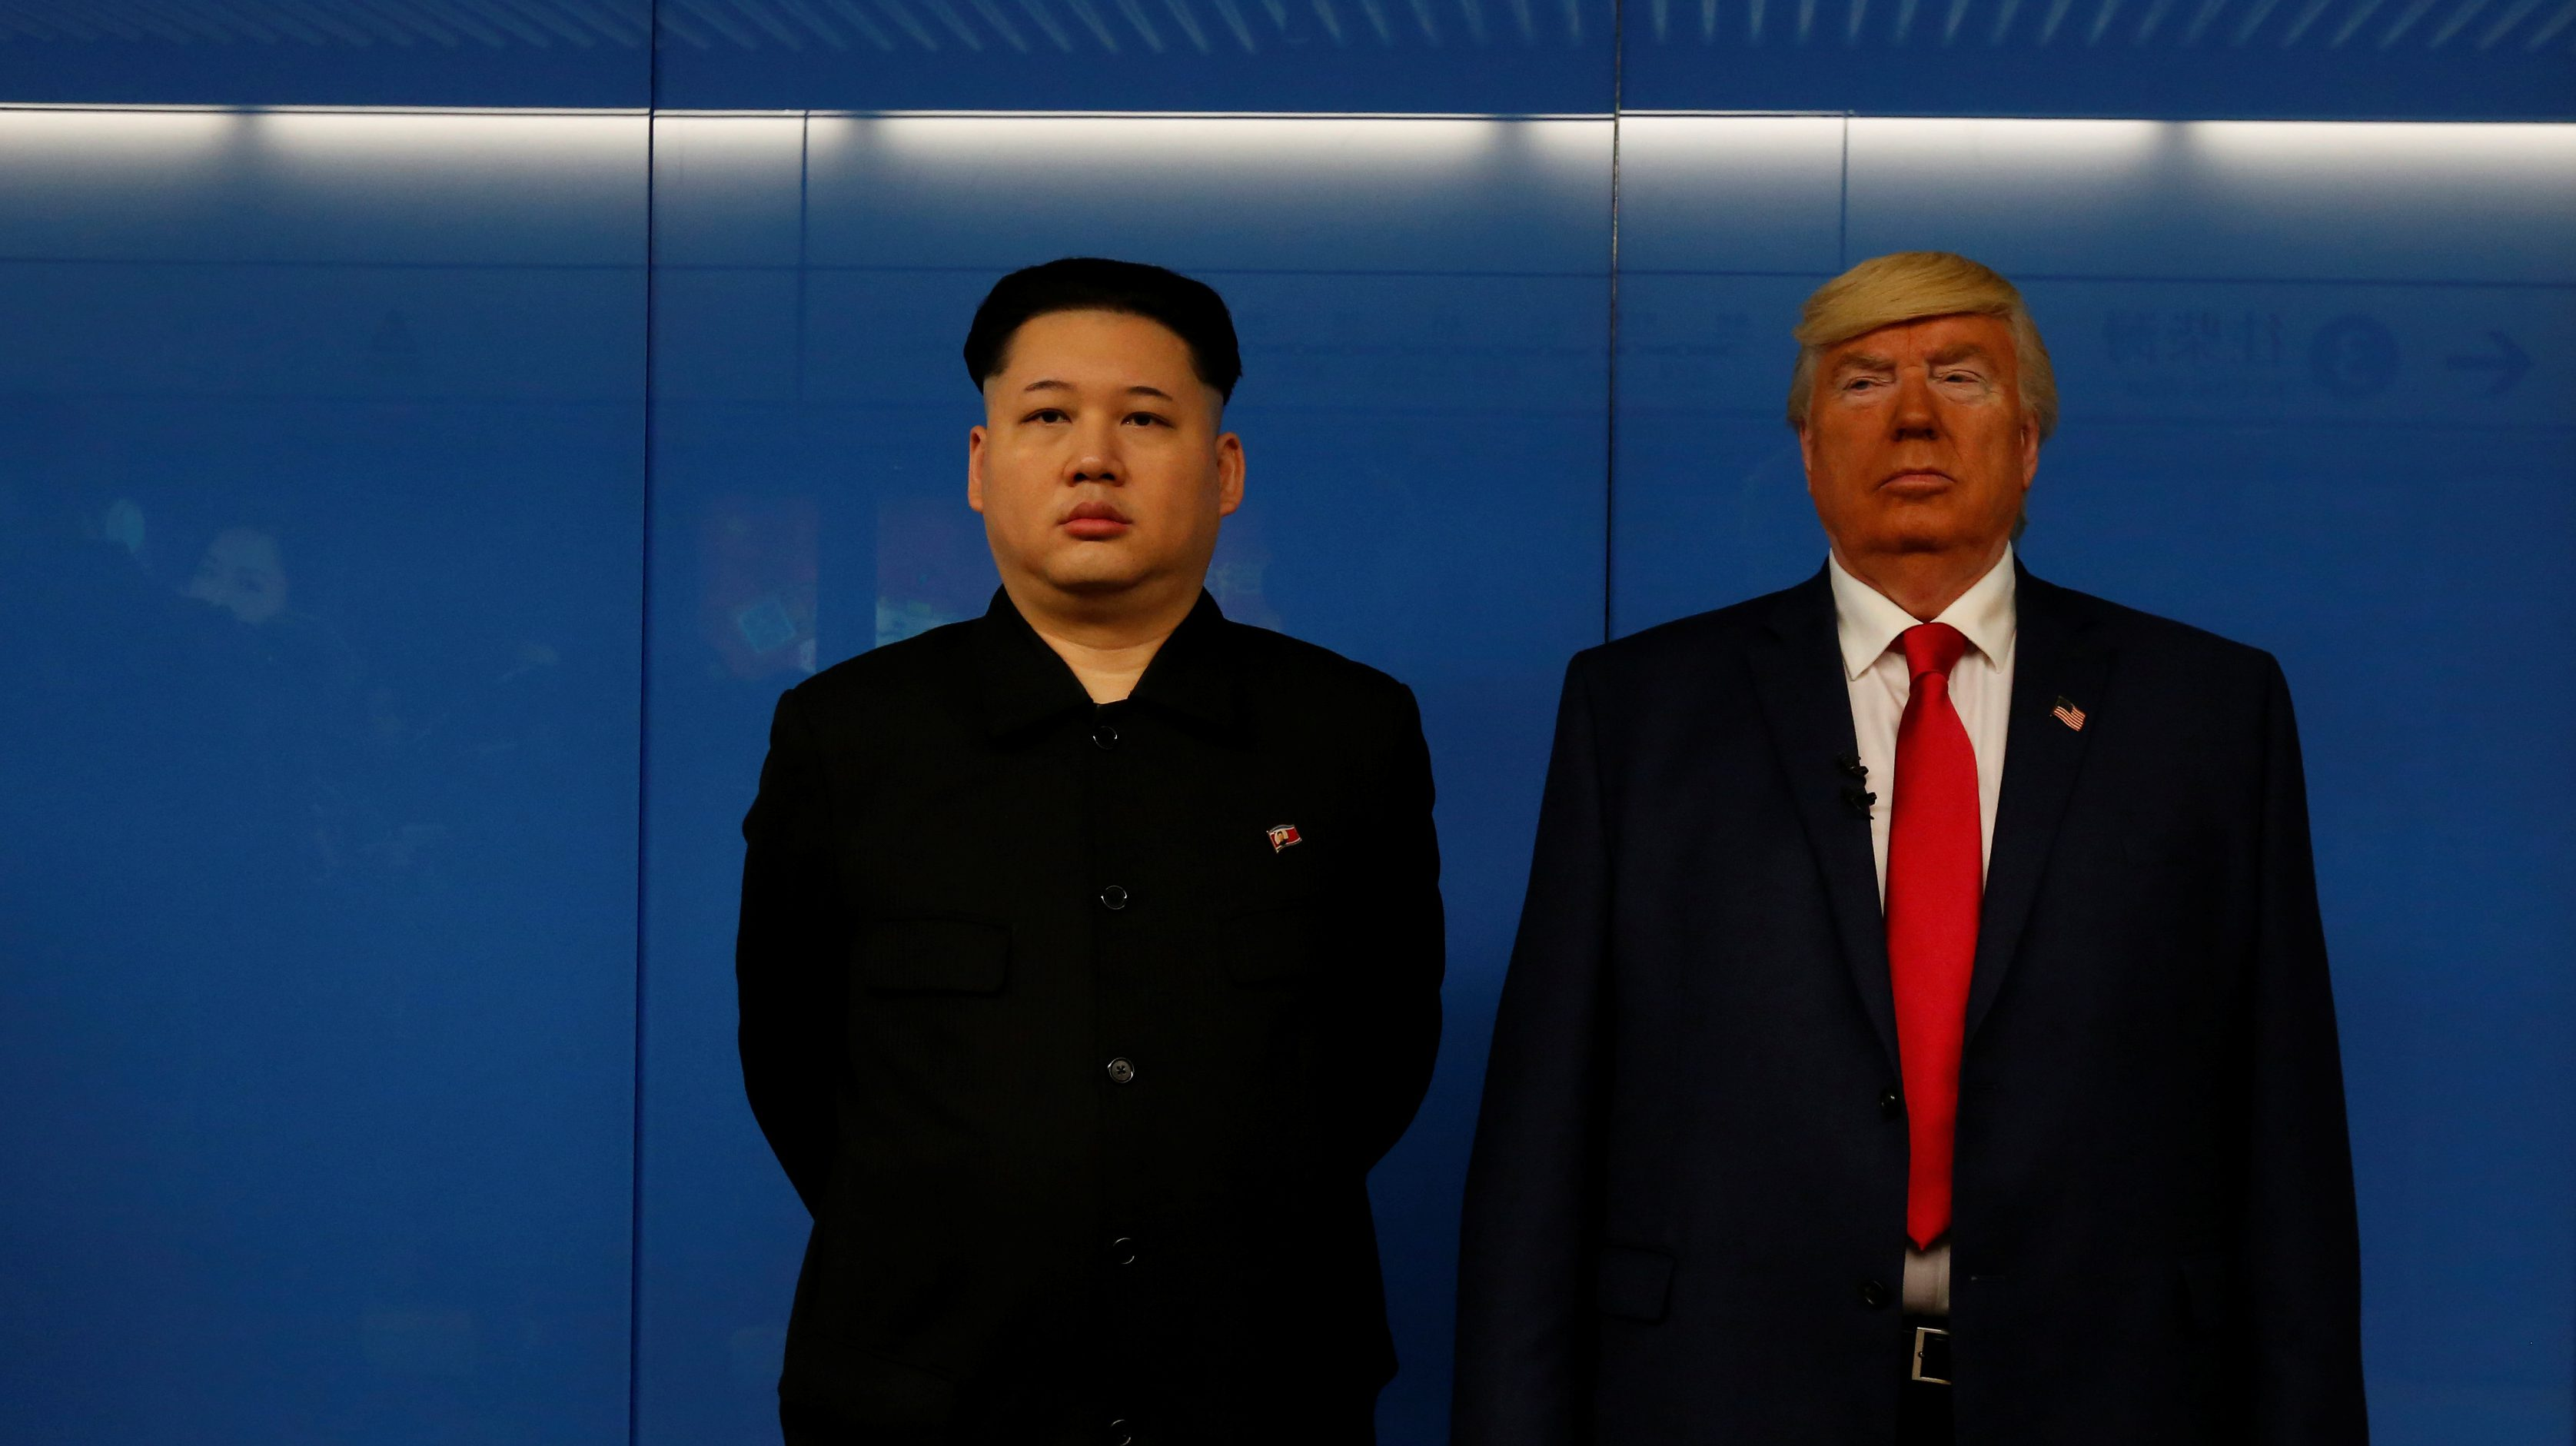 Dennis Alan of Chicago, 66, who is impersonating U.S. President Donald Trump, and Howard, 37, an Australian-Chinese who is impersonating North Korean leader Kim Jong-un, wait for a subway train in Hong Kong, China January 25, 2017.  REUTERS/Bobby Yip - RTSX8SP